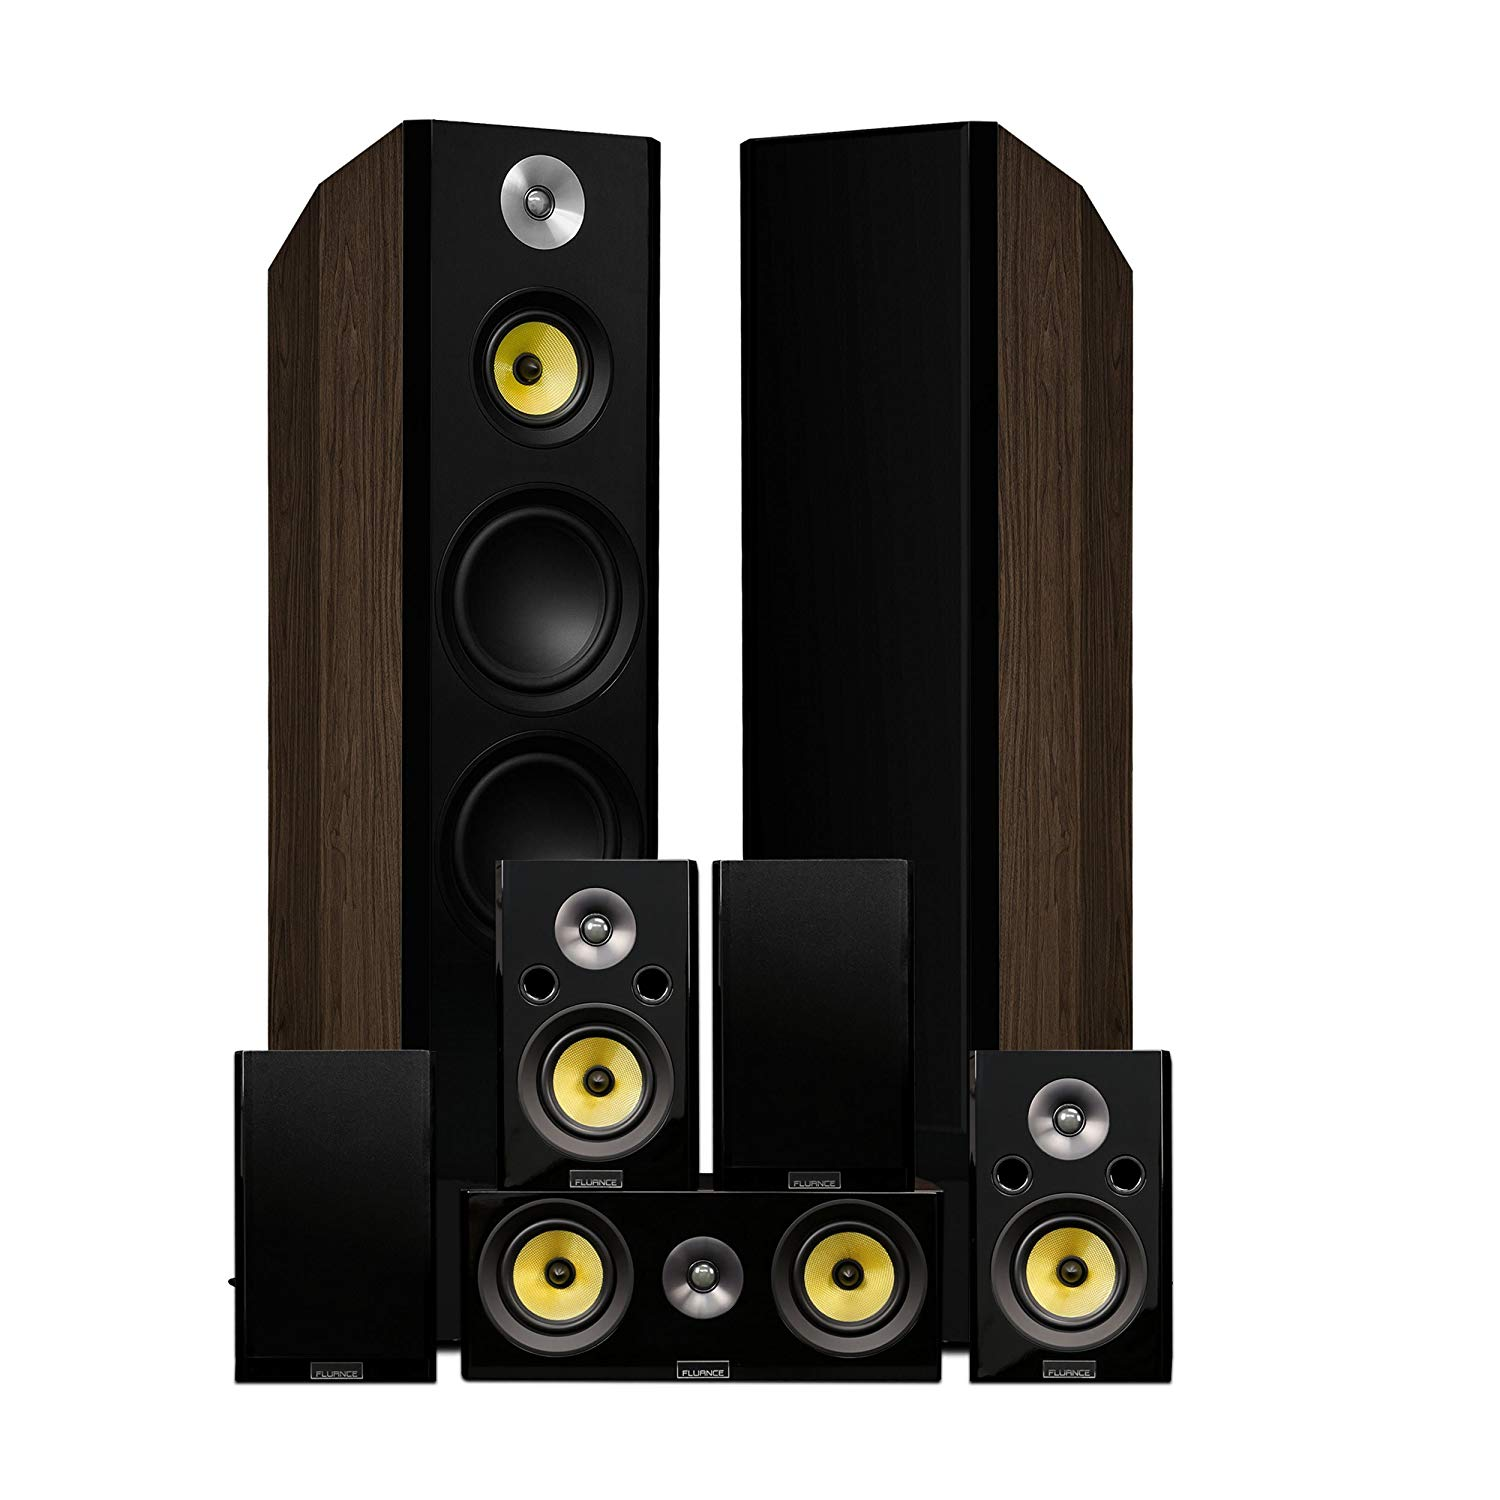 Fluance Signature Series Surround Sound Home Theater 7.0 Channel Speaker System including Three-way Floorstanding, Center, Surround & Rear Surround Speakers - Walnut (HF70WR)